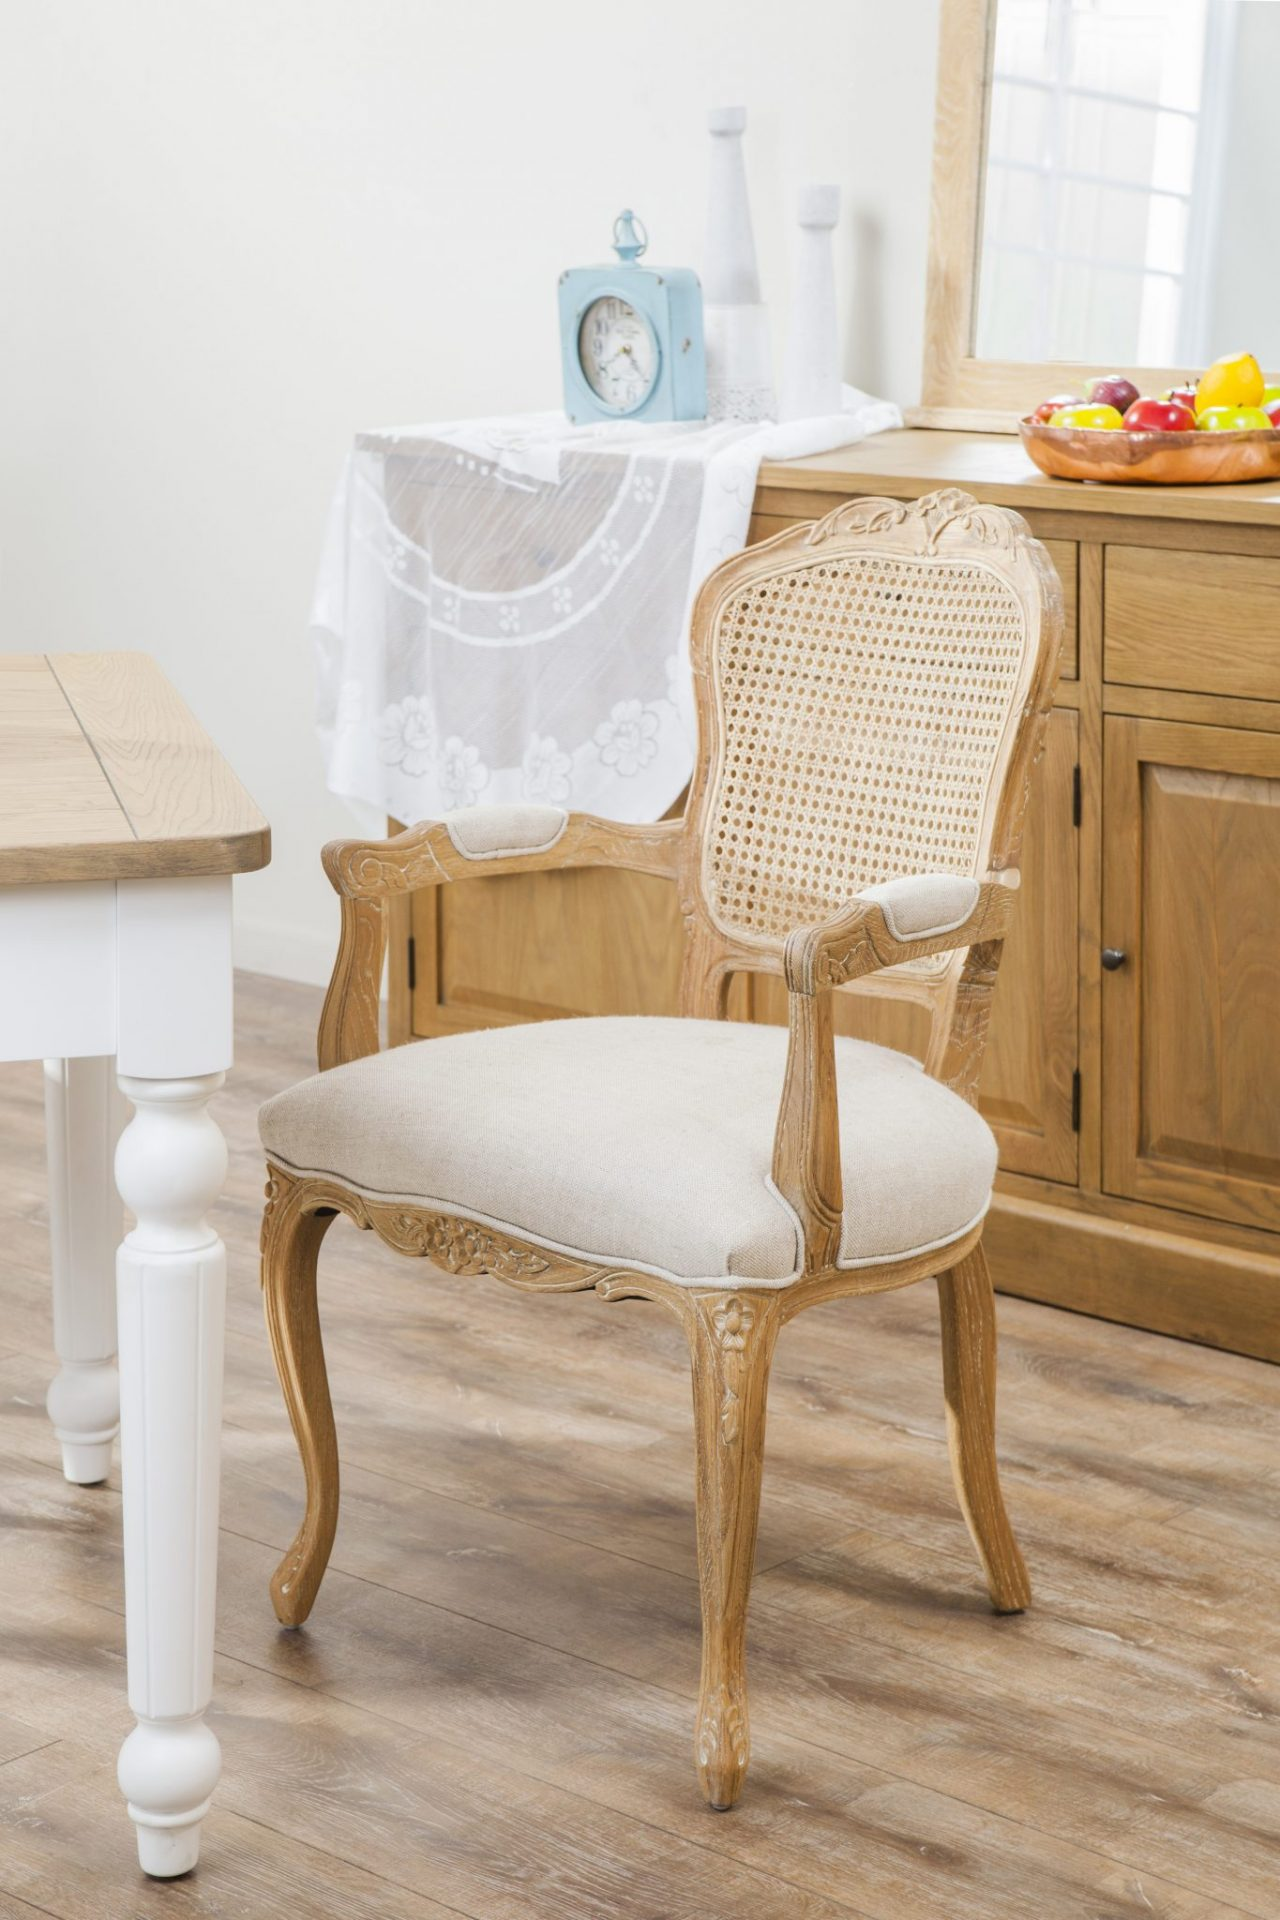 Dining Room Oak Collection - All 4 Furnishings